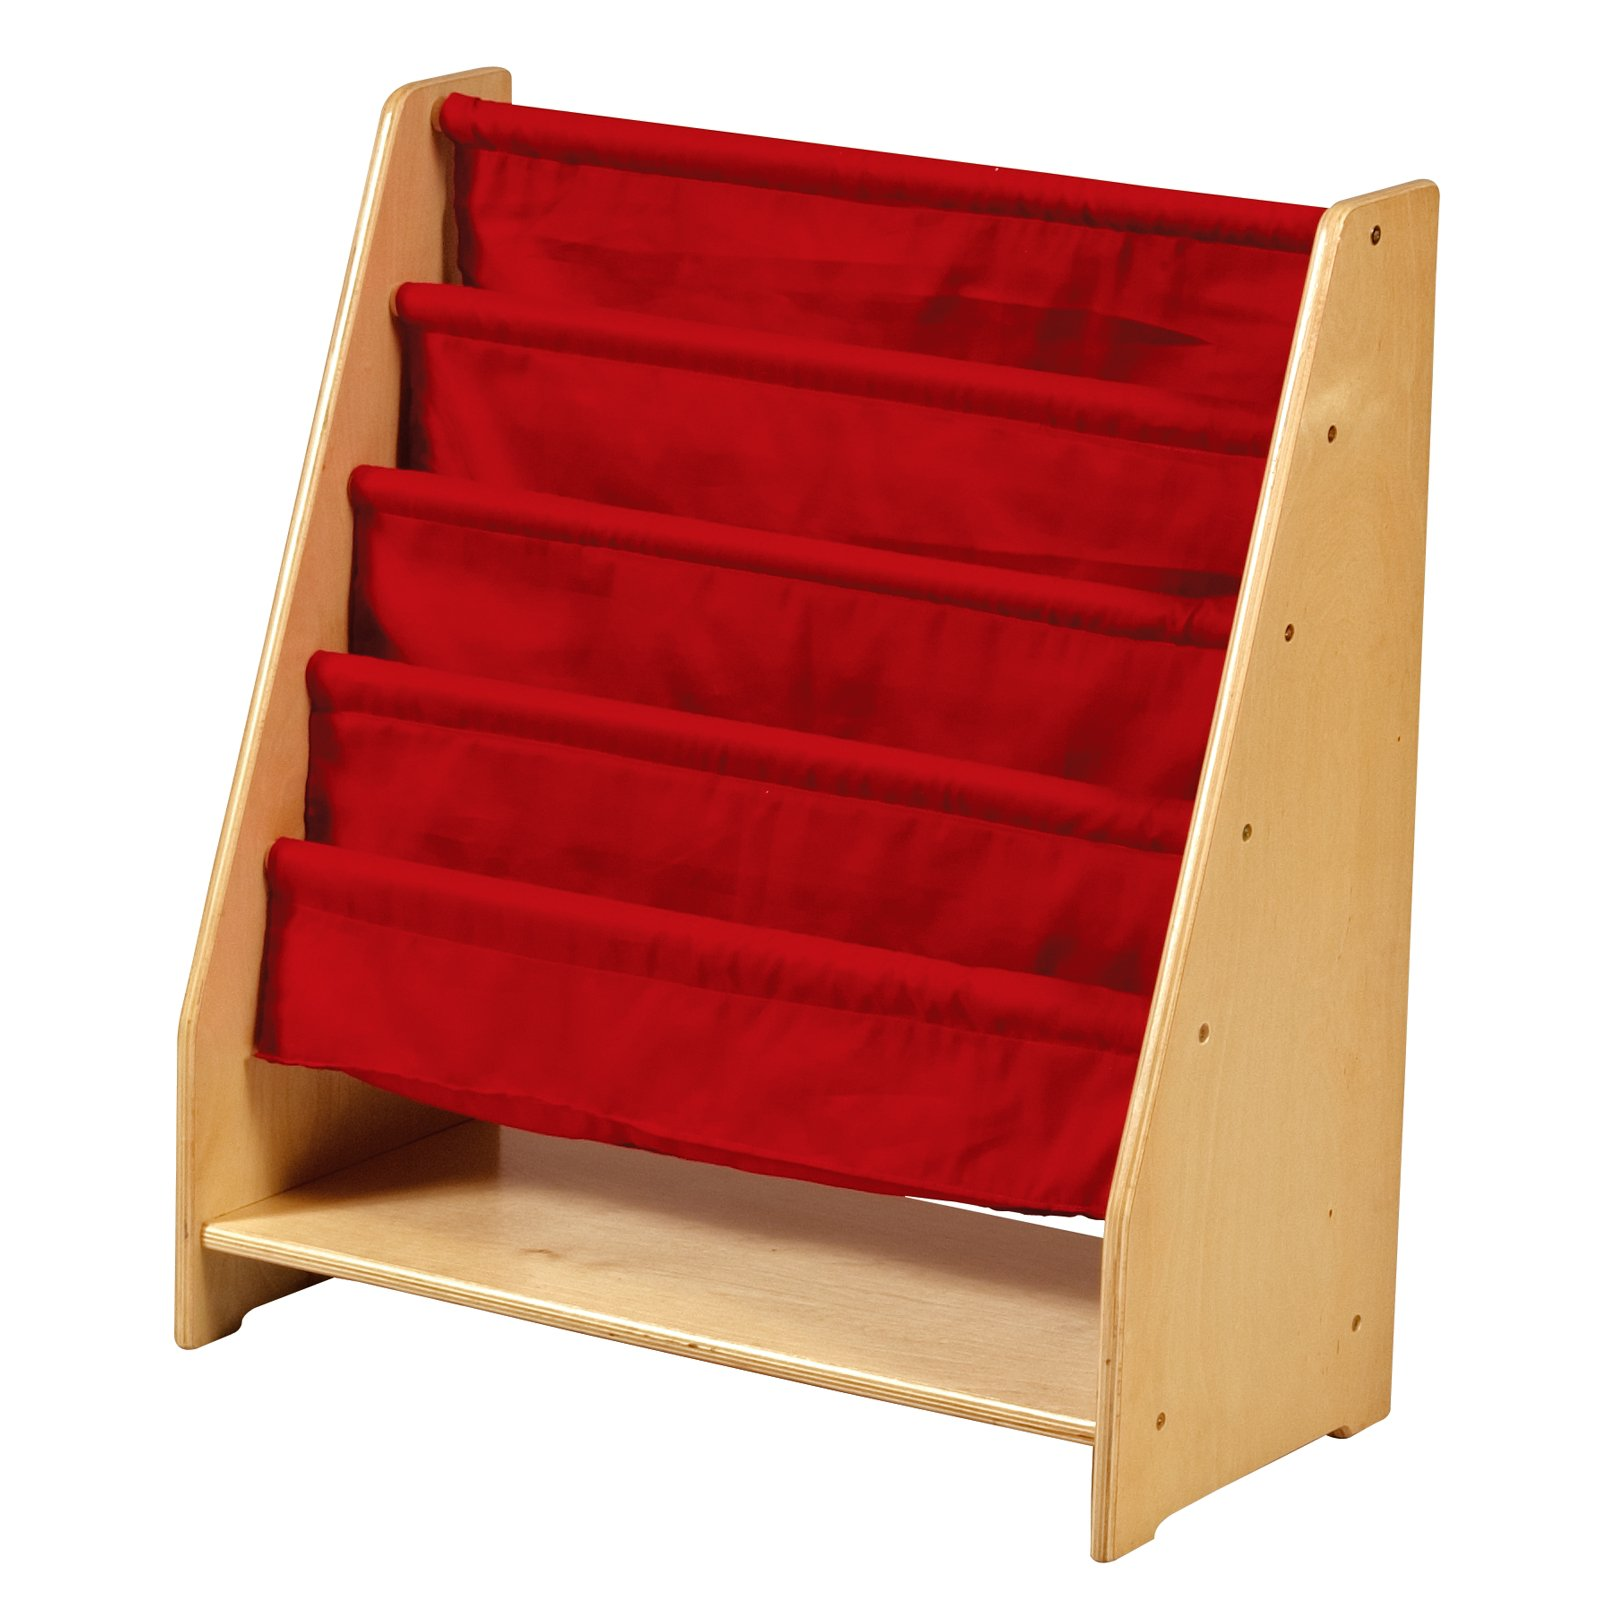 Guidecraft Kids Book Rack, 4-Tier with Red Fabric Storage Pockets